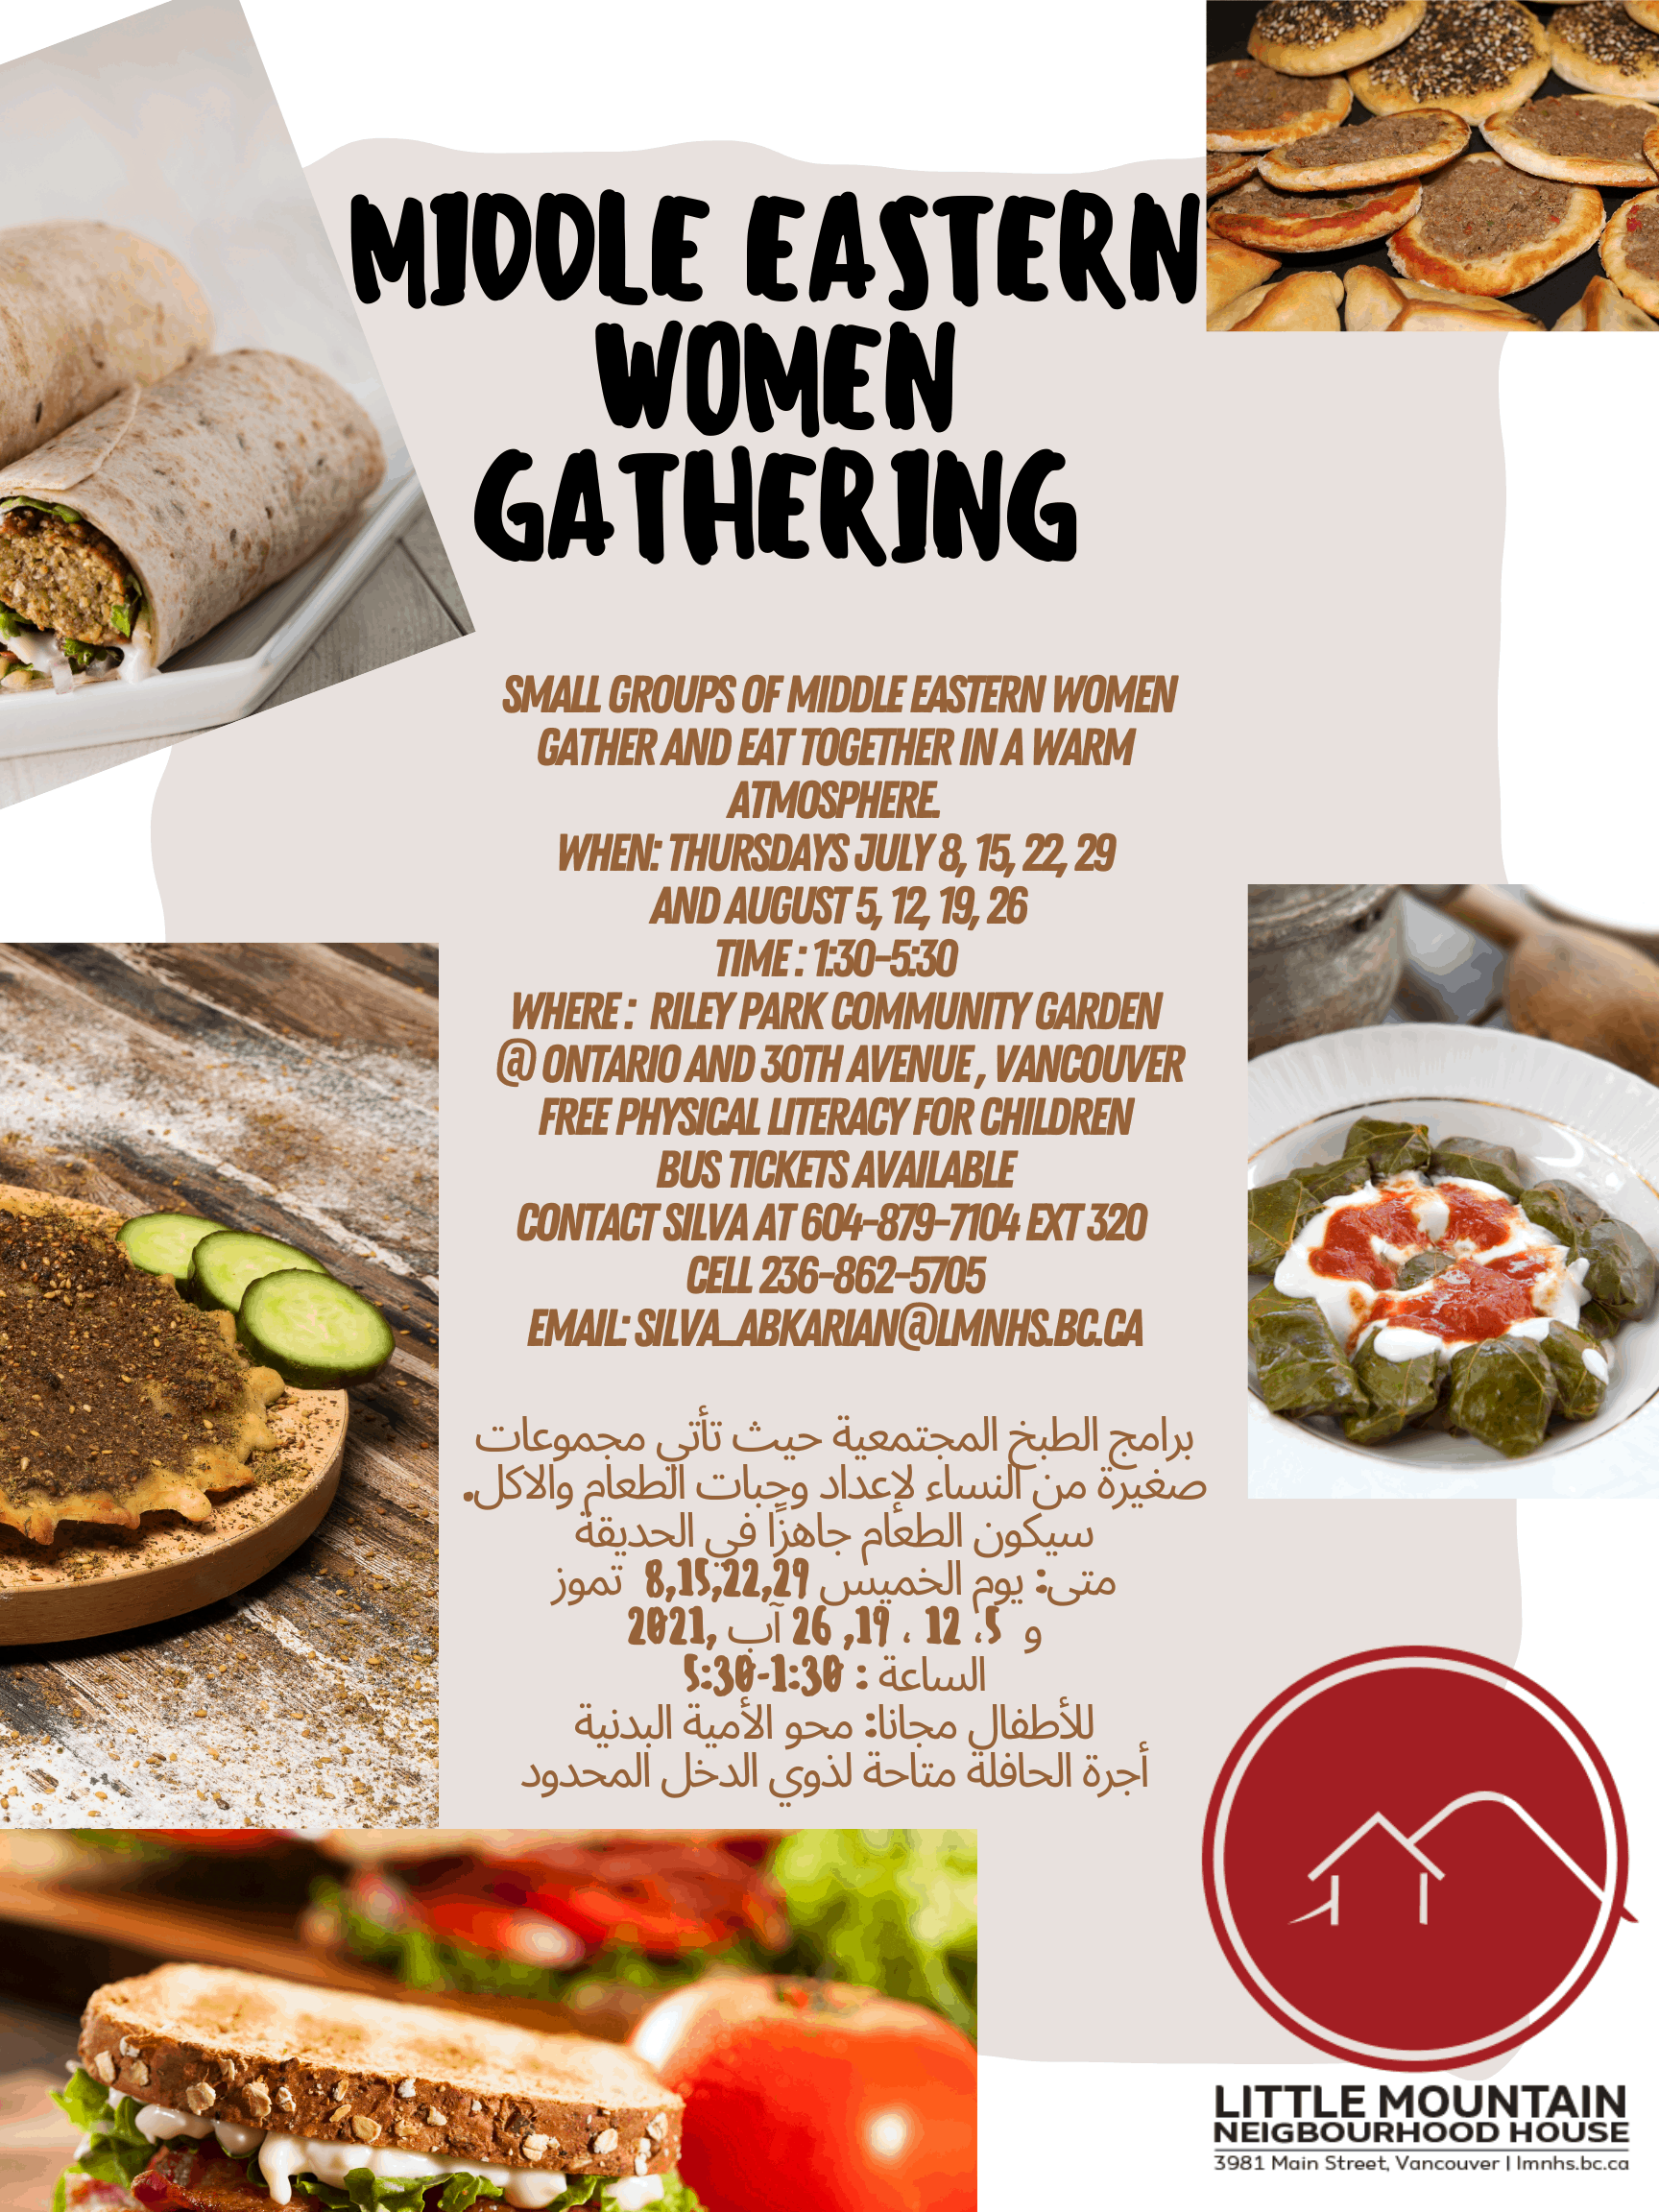 Community Gathering for Middle Eastern Women